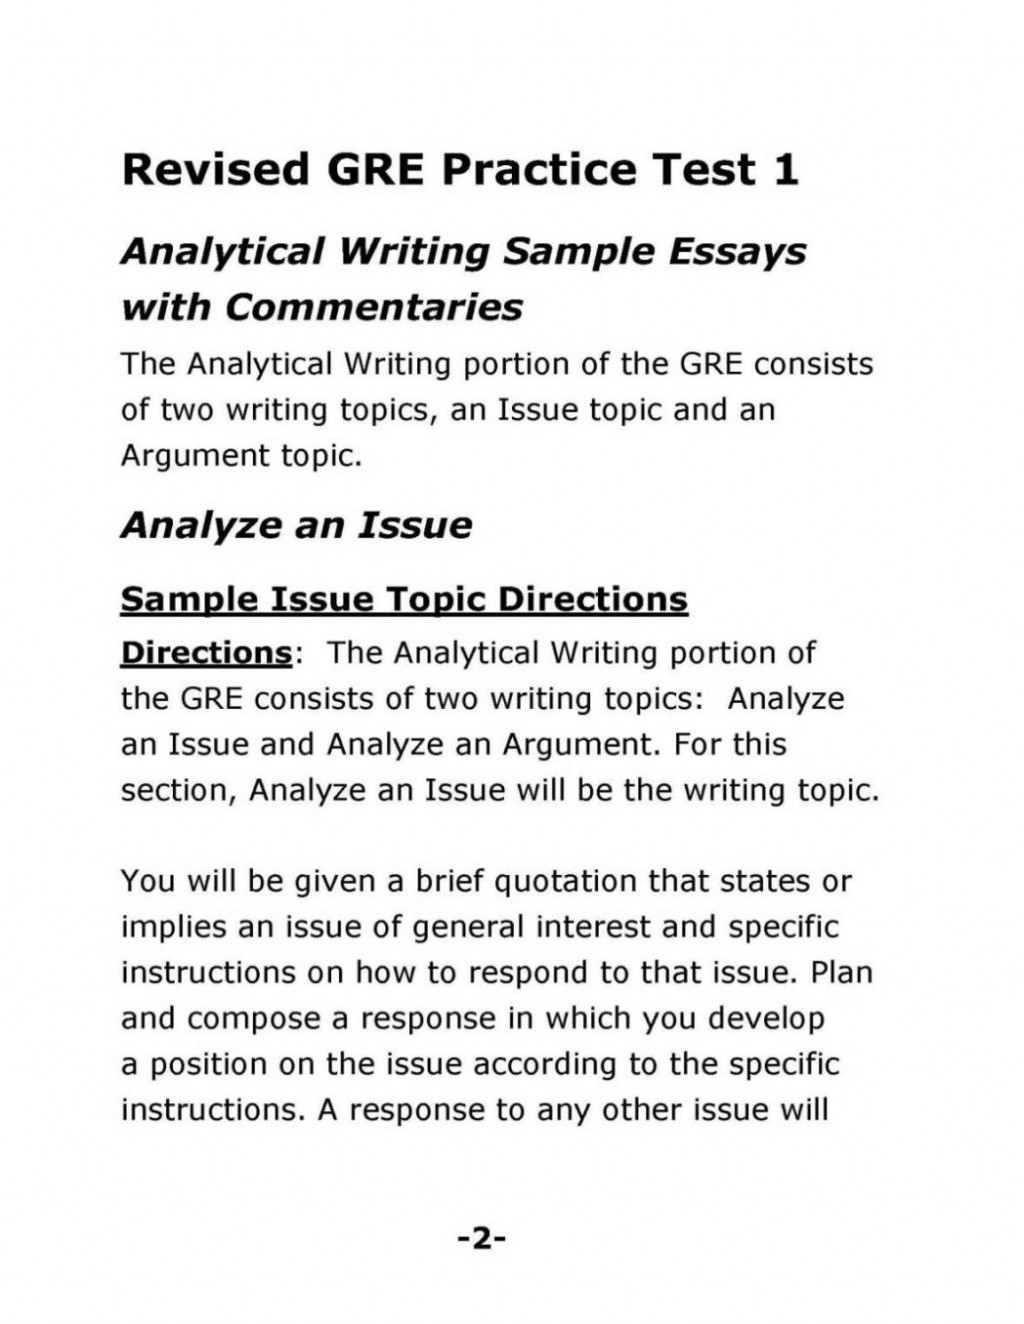 005 Essay Example Gre Issue Sample Topics For Essays Diversity Argumentative Test Papers With Soluti Responses Prompts Template Chart Pdf Awa Unusual 6 Ets Large